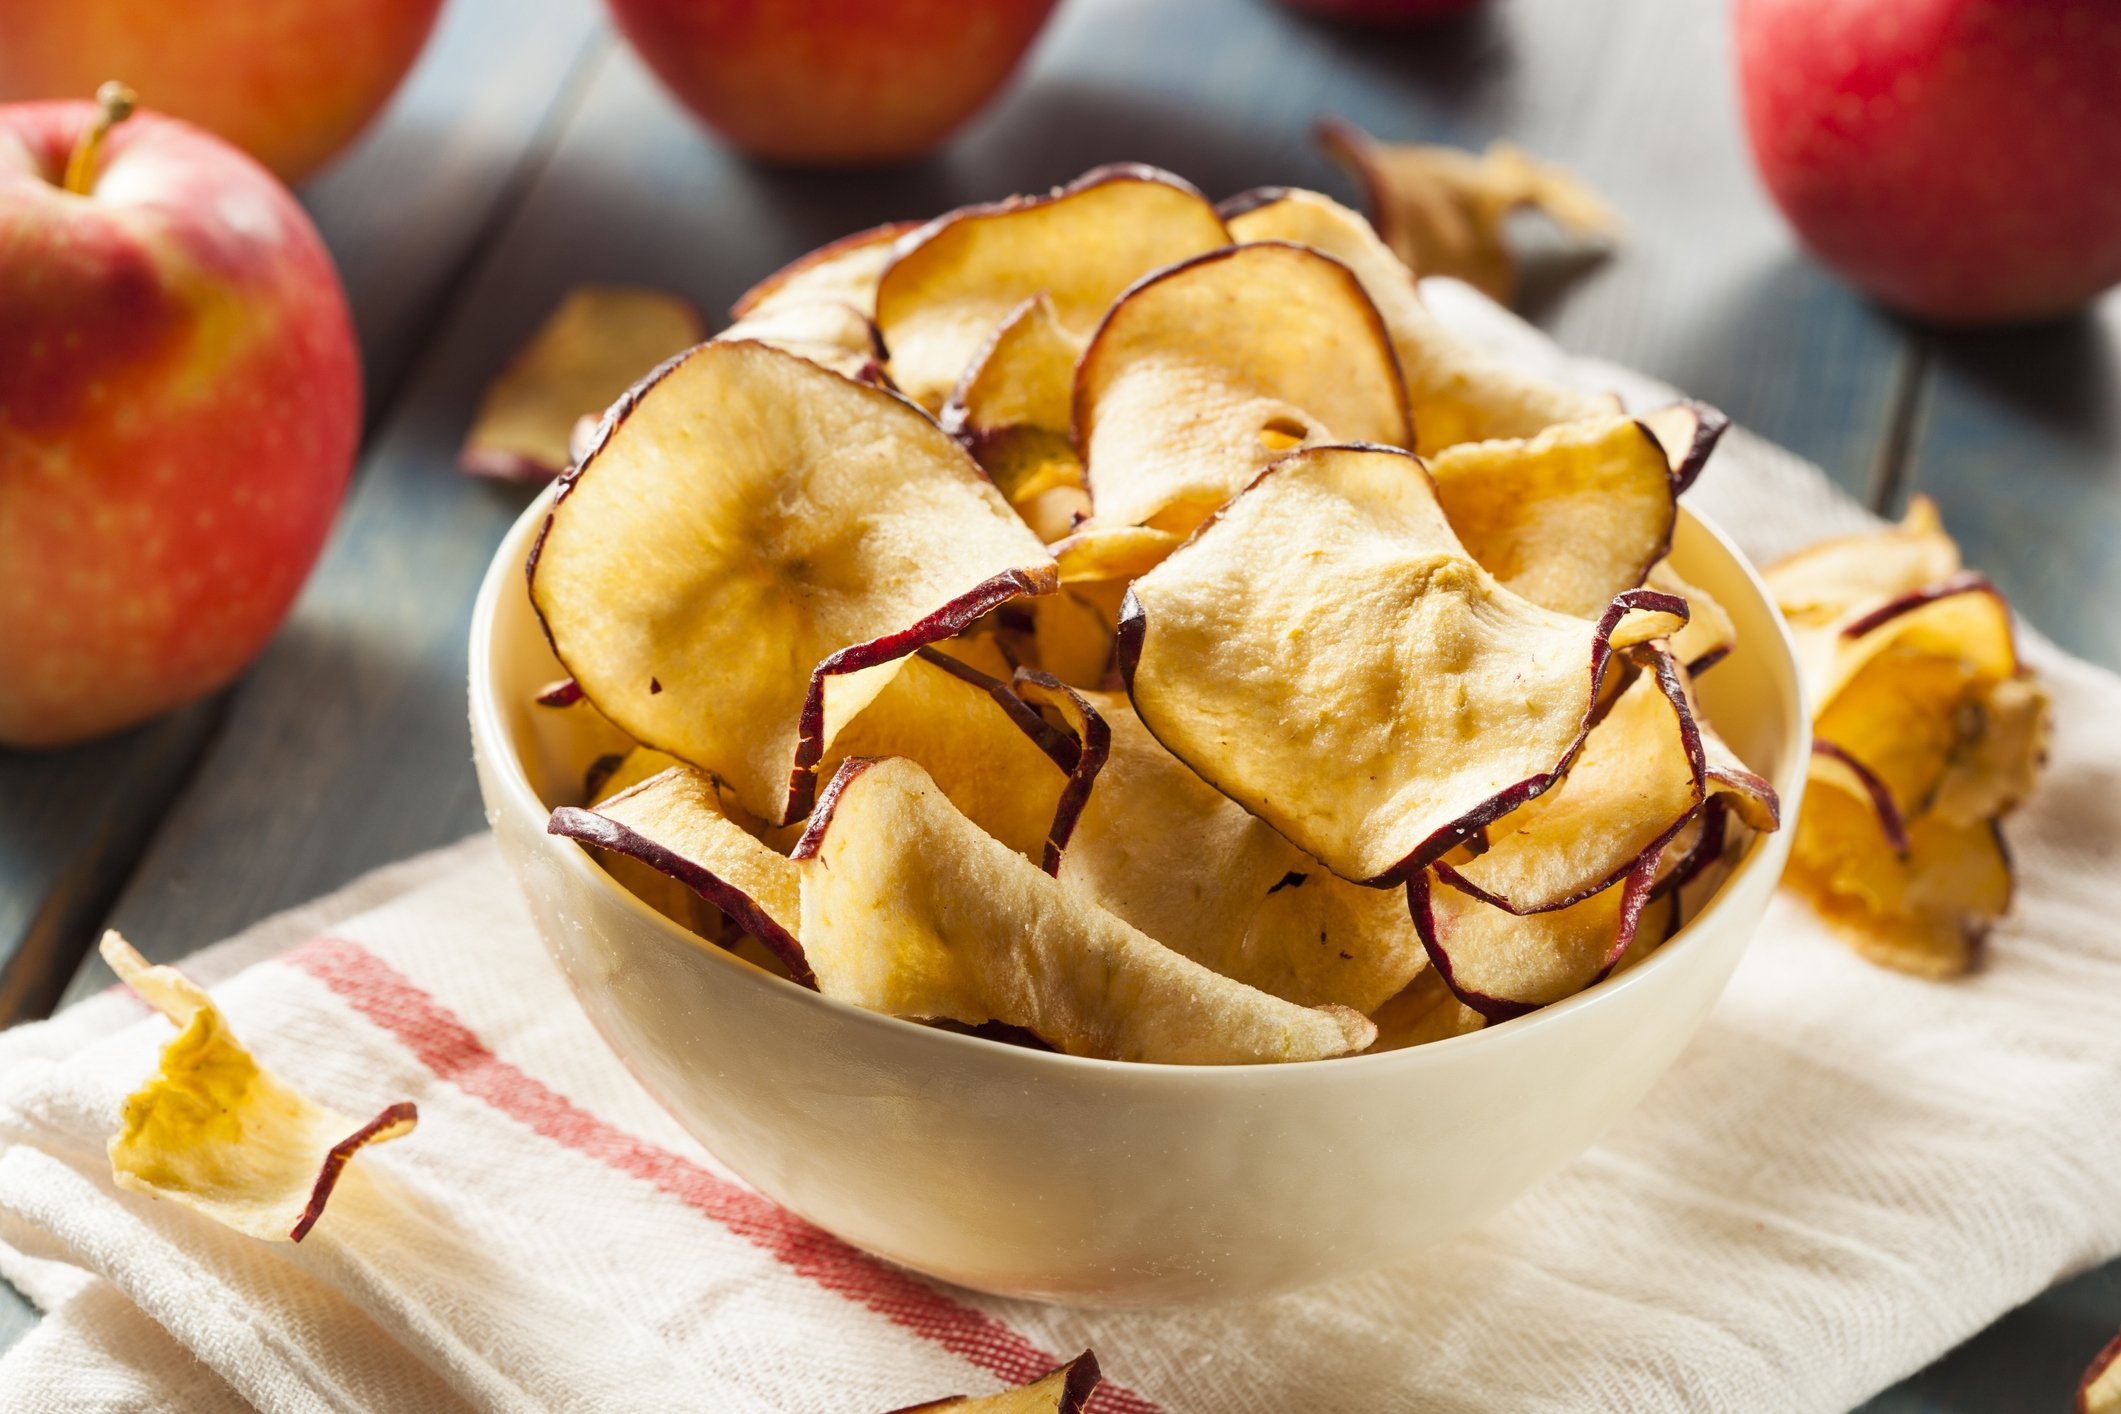 Baked or dehydrated apple chips are a great and healthy snack. (iStock Photo)